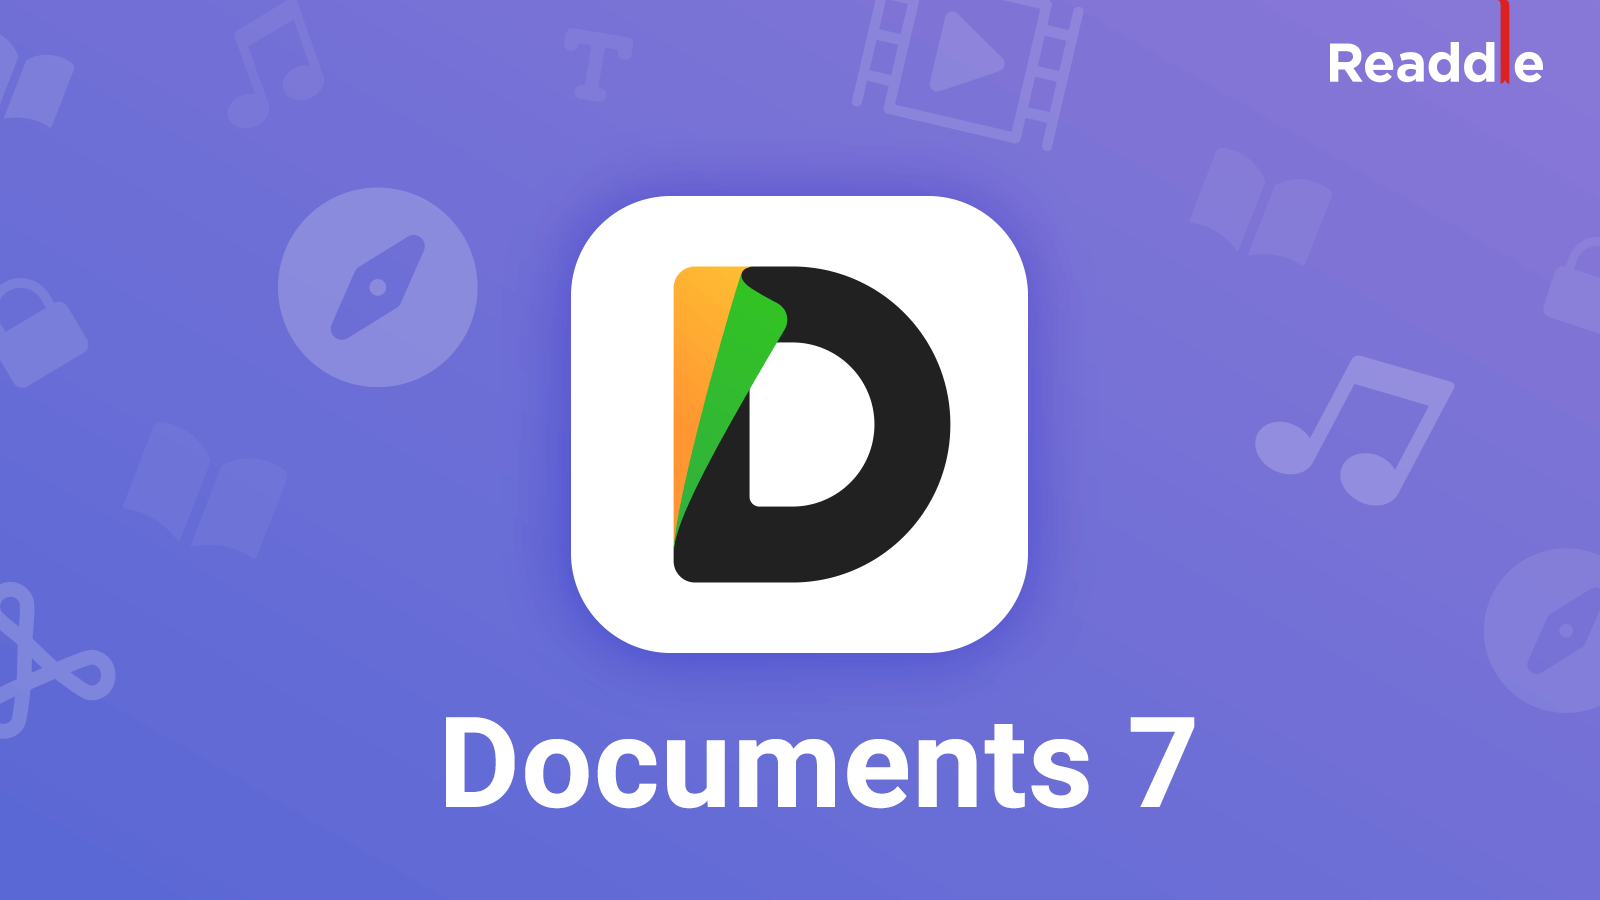 What S New In Documents 7 The Best File Manager For Ios Readdle